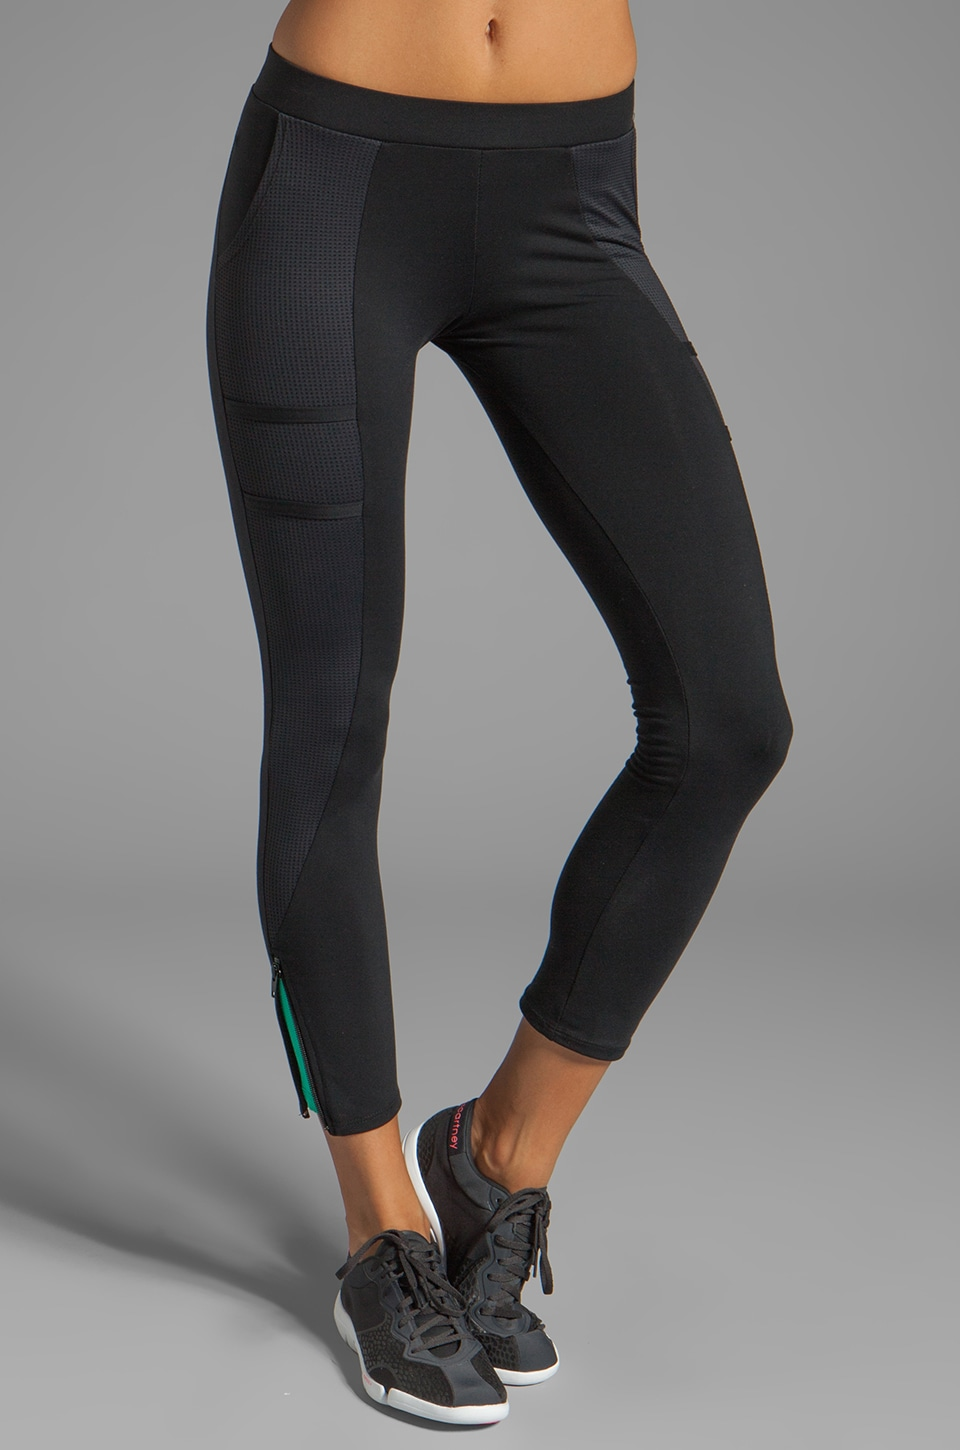 SOLOW Eclon Contrast Legging in Black/Bay